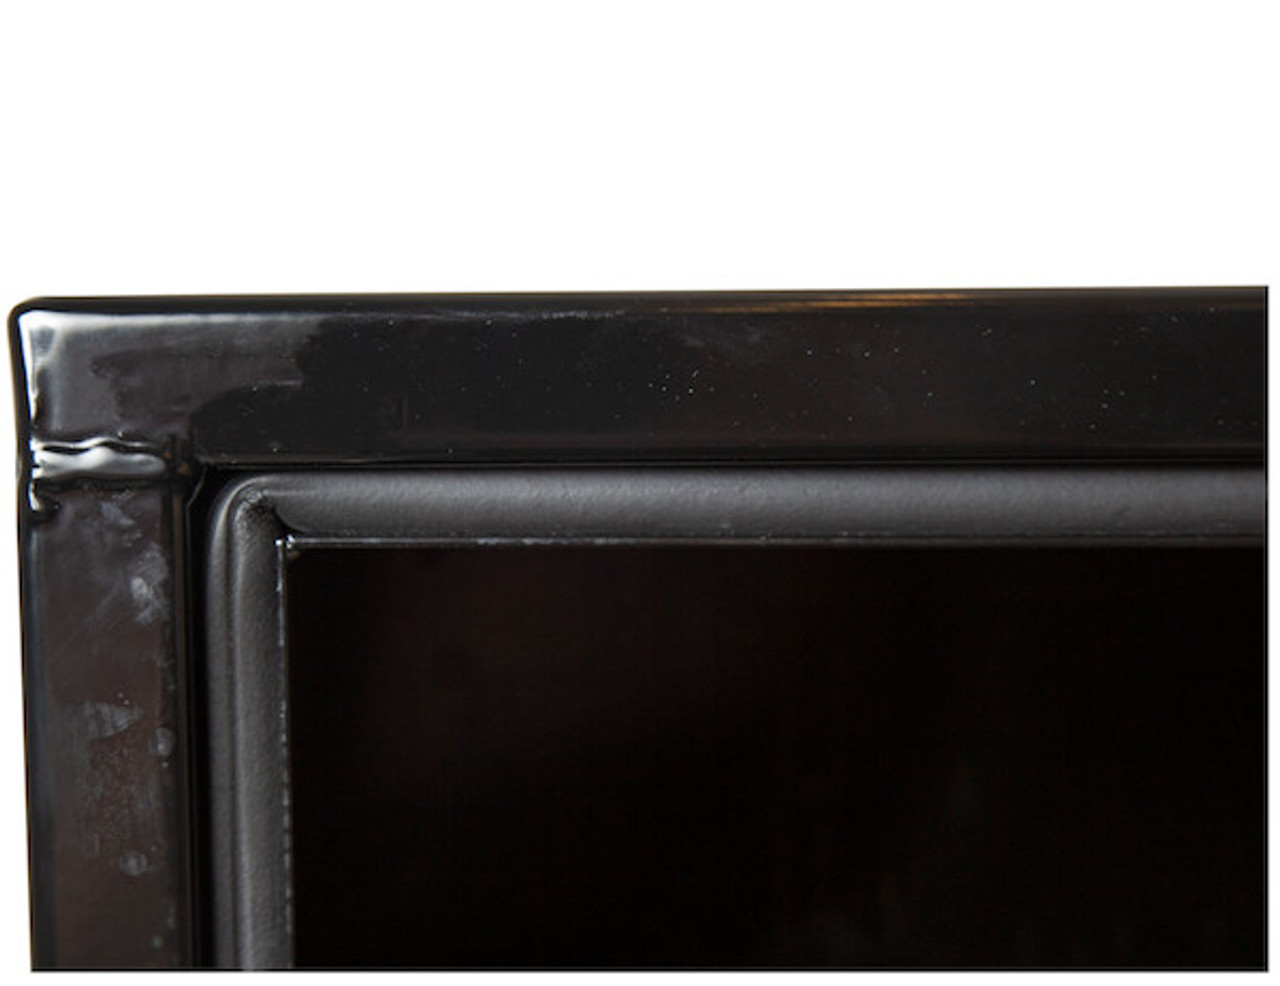 """1702115 BUYERS PRODUCTS BLACK STEEL UNDERBODY TRUCK TOOLBOX WITH PADDLE LATCH 18""""HX18""""DX60""""W"""